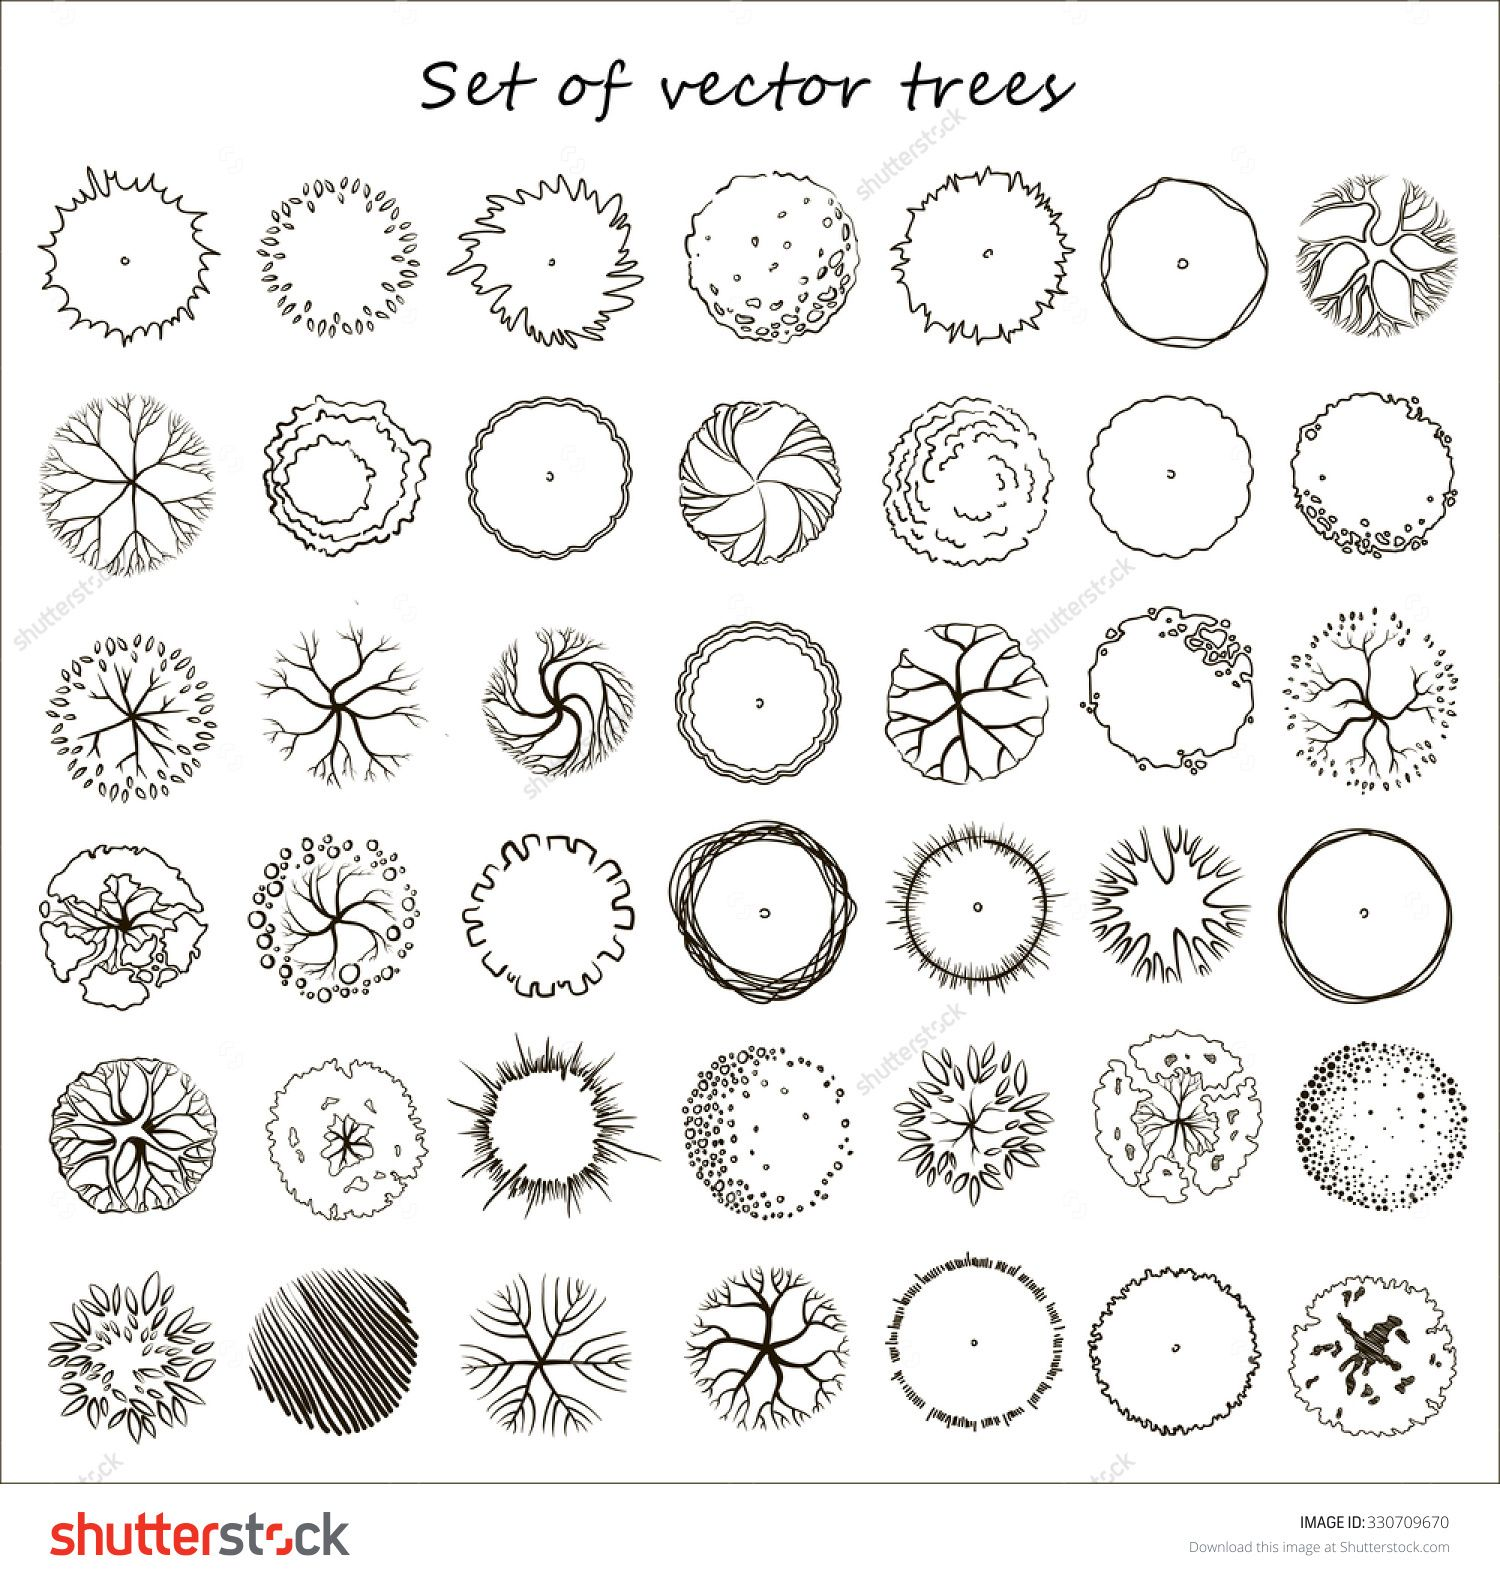 Architecture Drawing Trees tree plan silhouette vector - buscar con google | grafismo